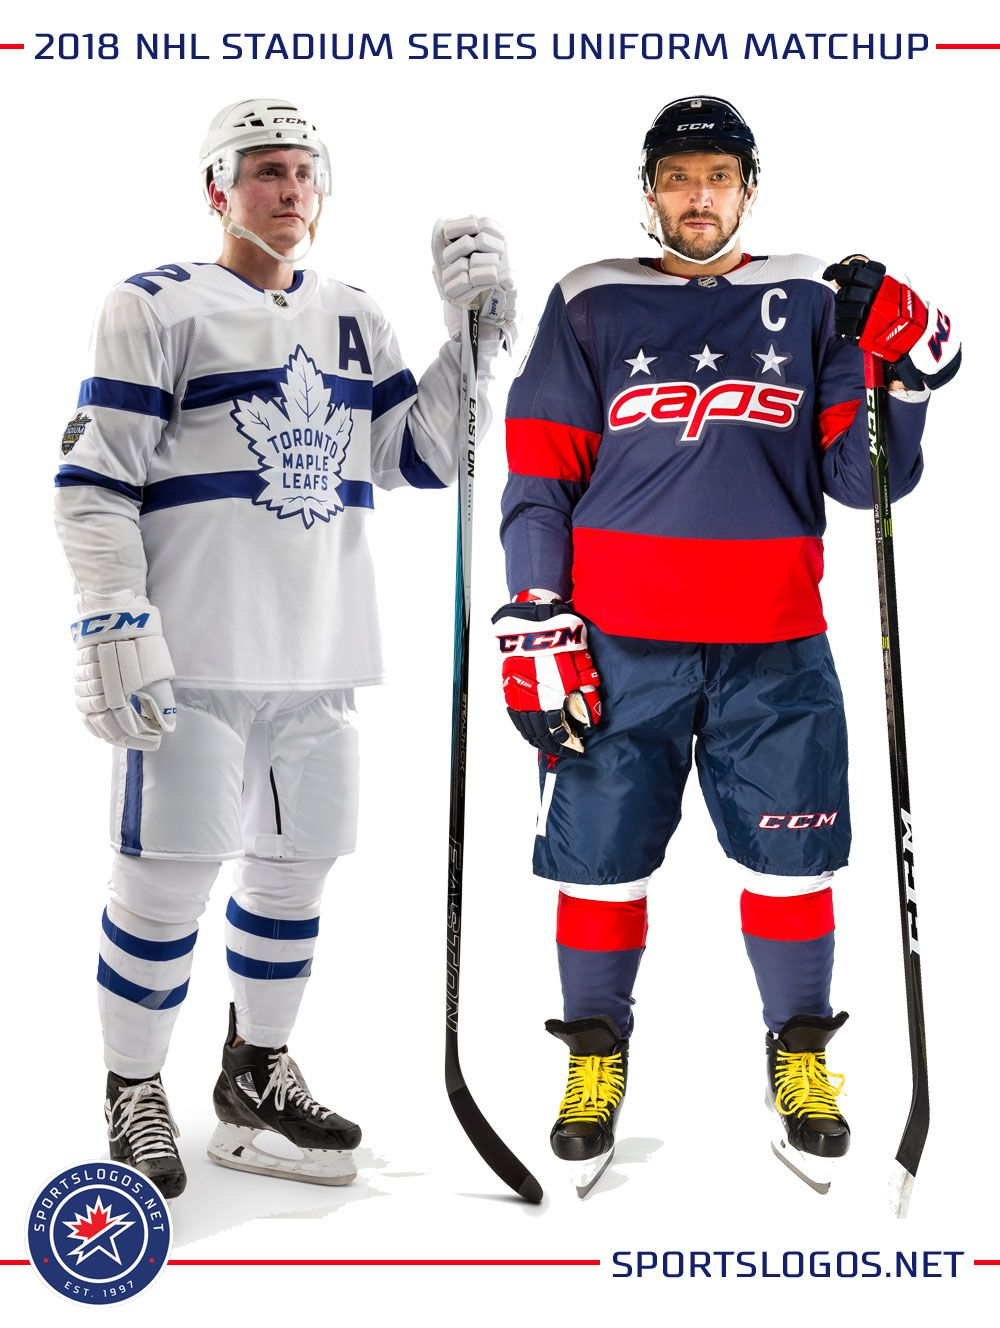 e10d43d0ce4 Leafs are Ready, Aye, Ready for Stadium Series; Unveil Uniform | Chris  Creamer's SportsLogos.Net News and Blog : New Logos and New Uniforms news,  photos, ...